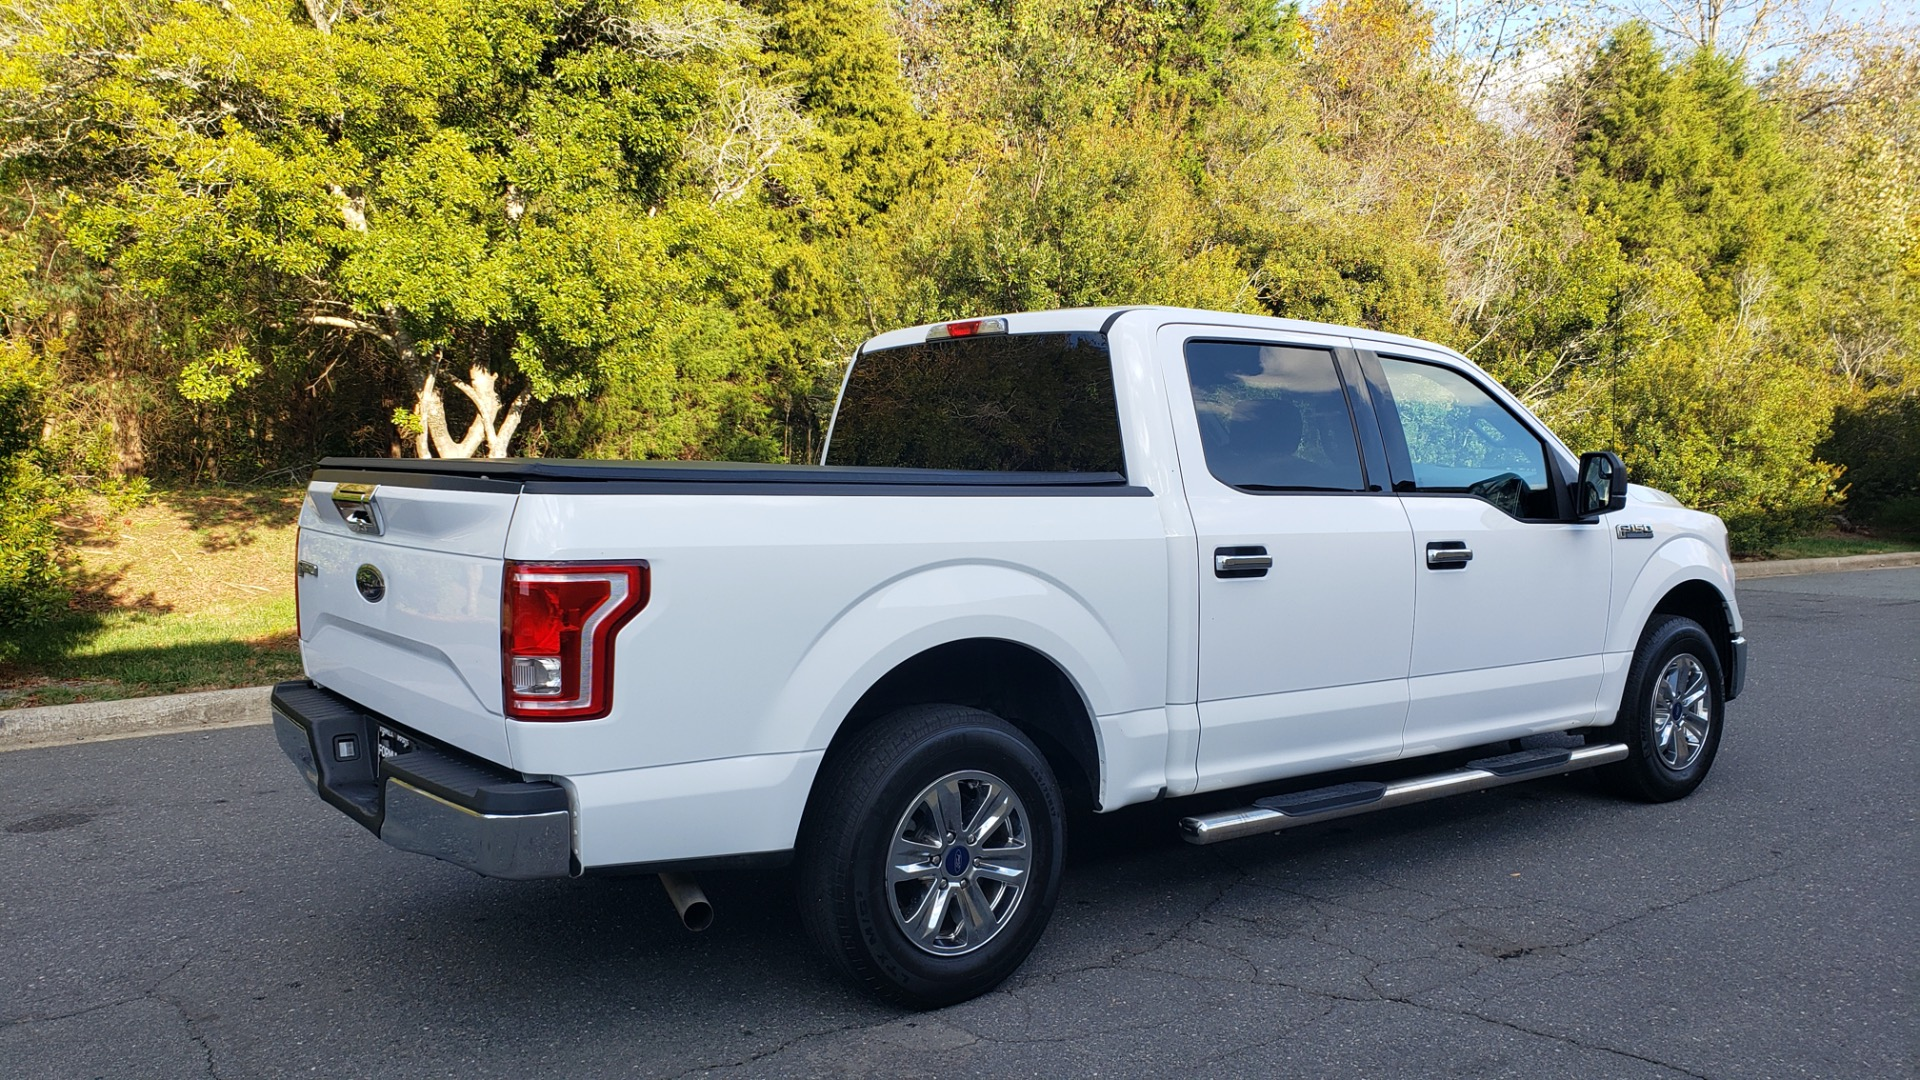 Used 2017 Ford F-150 XLT 4x2 SUPERCREW / V6 / AUTO / 145 WB / 5.6 BED for sale Sold at Formula Imports in Charlotte NC 28227 11